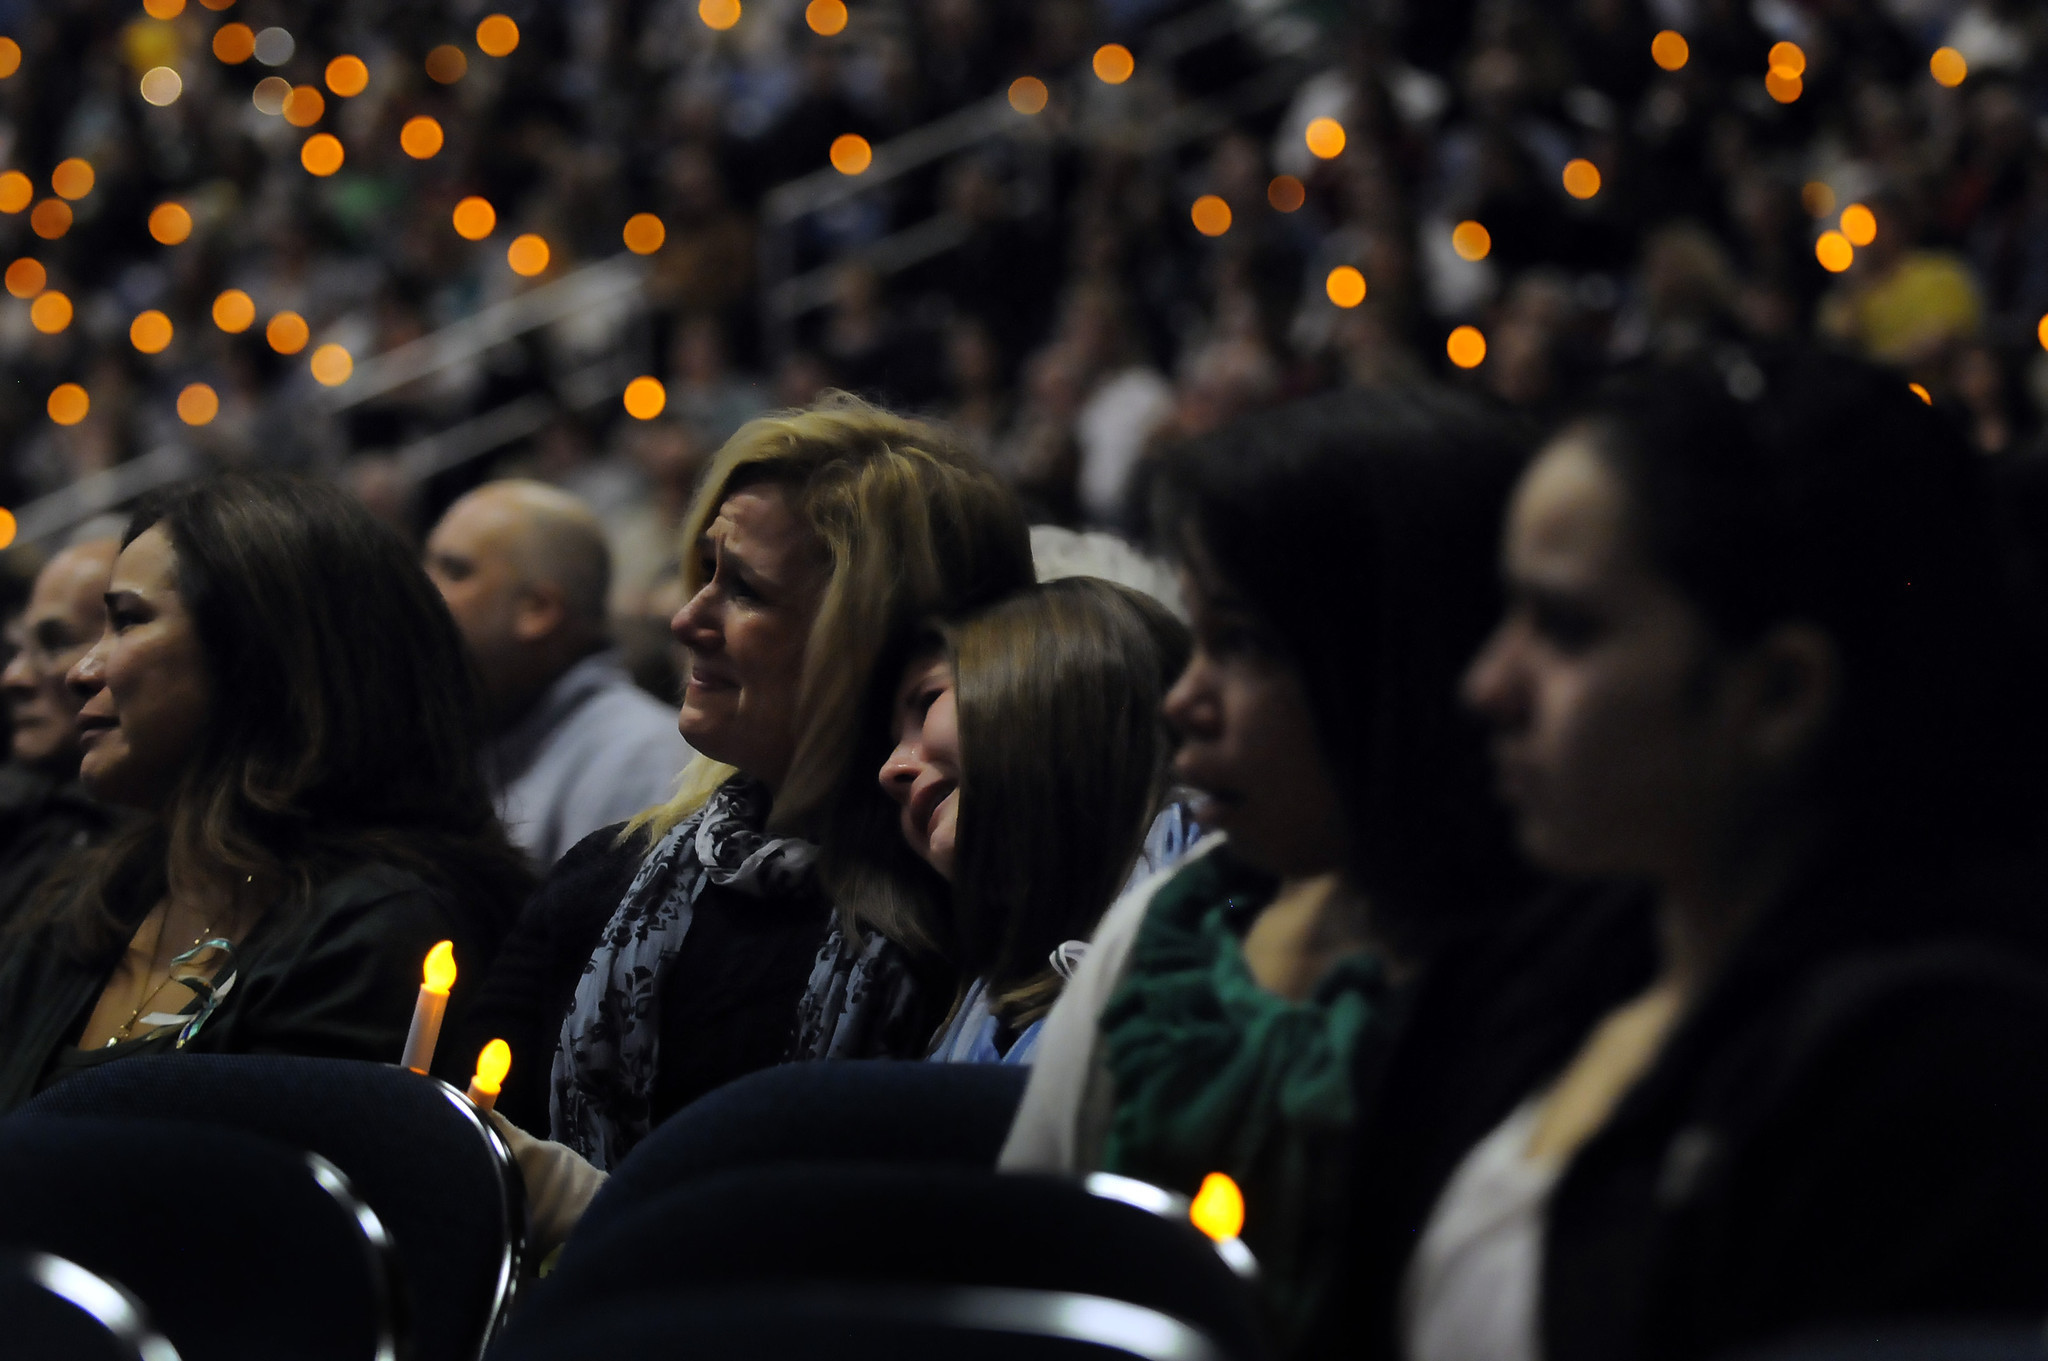 In the wake of the shooting, the entire state grieved. This photo was taken at a vigil at Western Connecticut State University on Dec. 19, 2012.